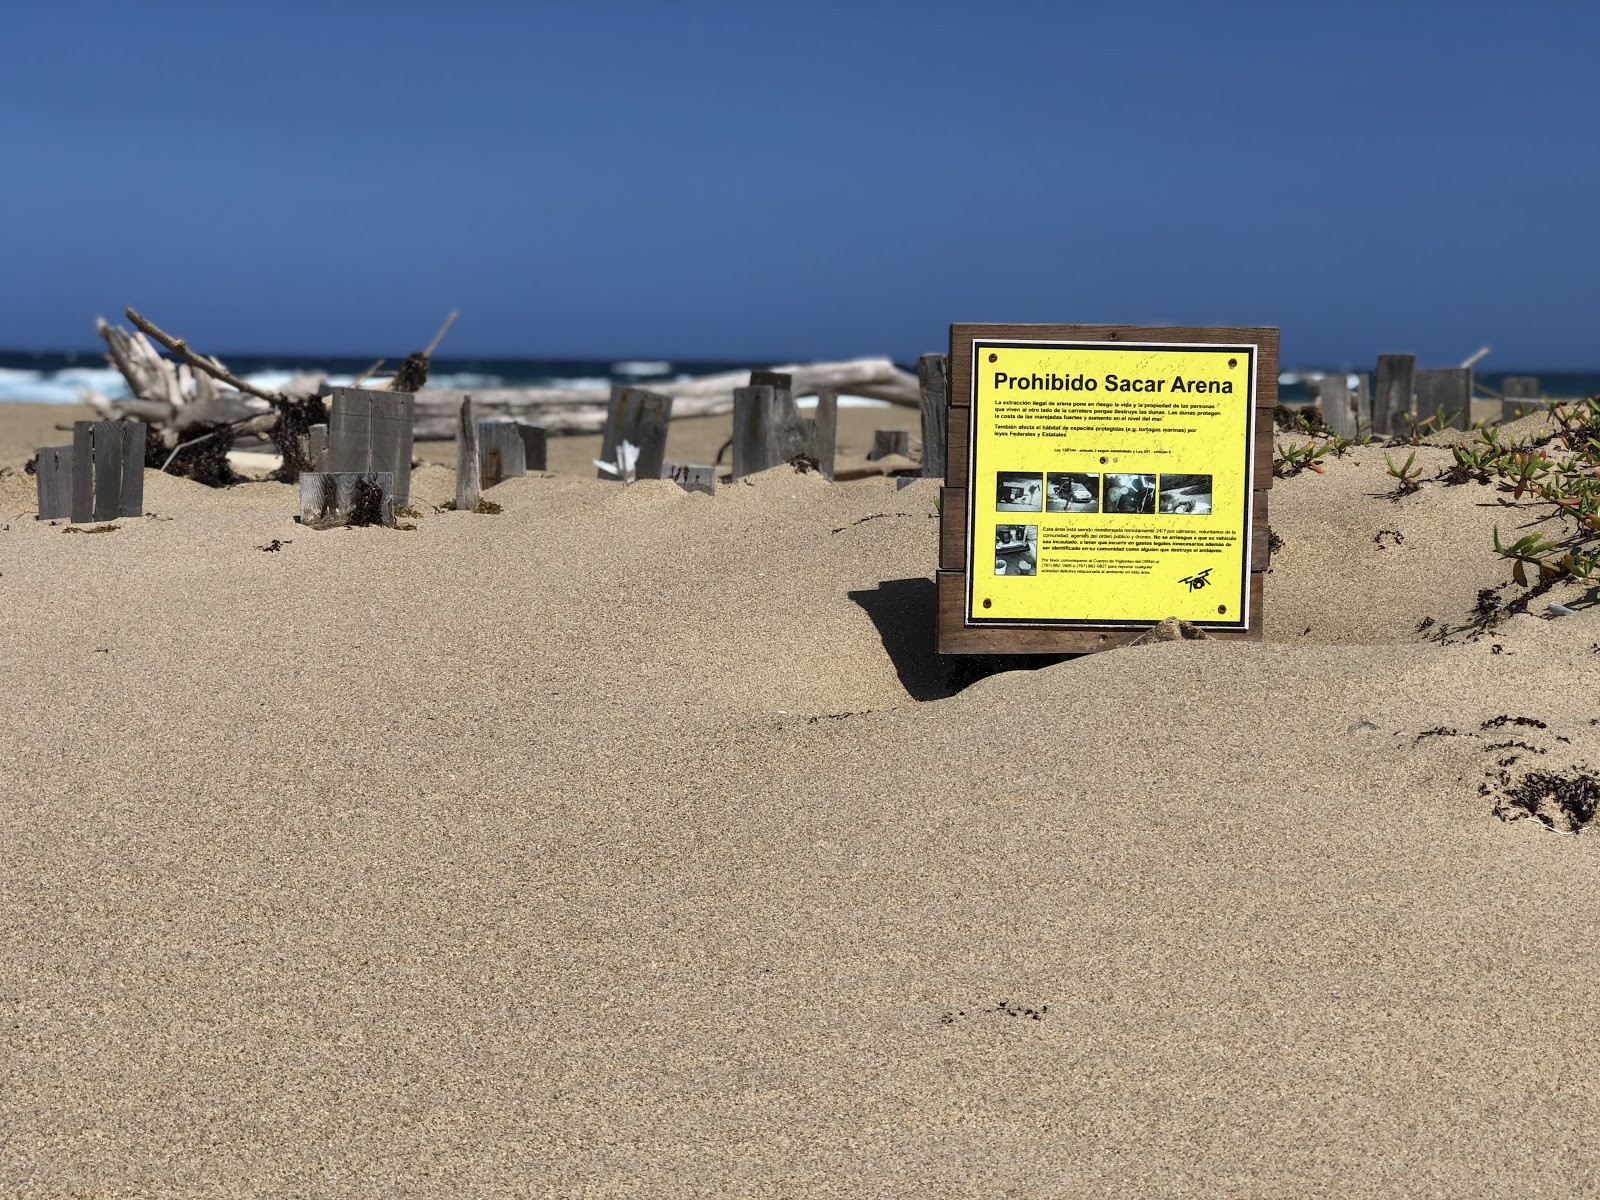 Perched in an active dune, a yellow sign warns agains the extraction of sand from the area.